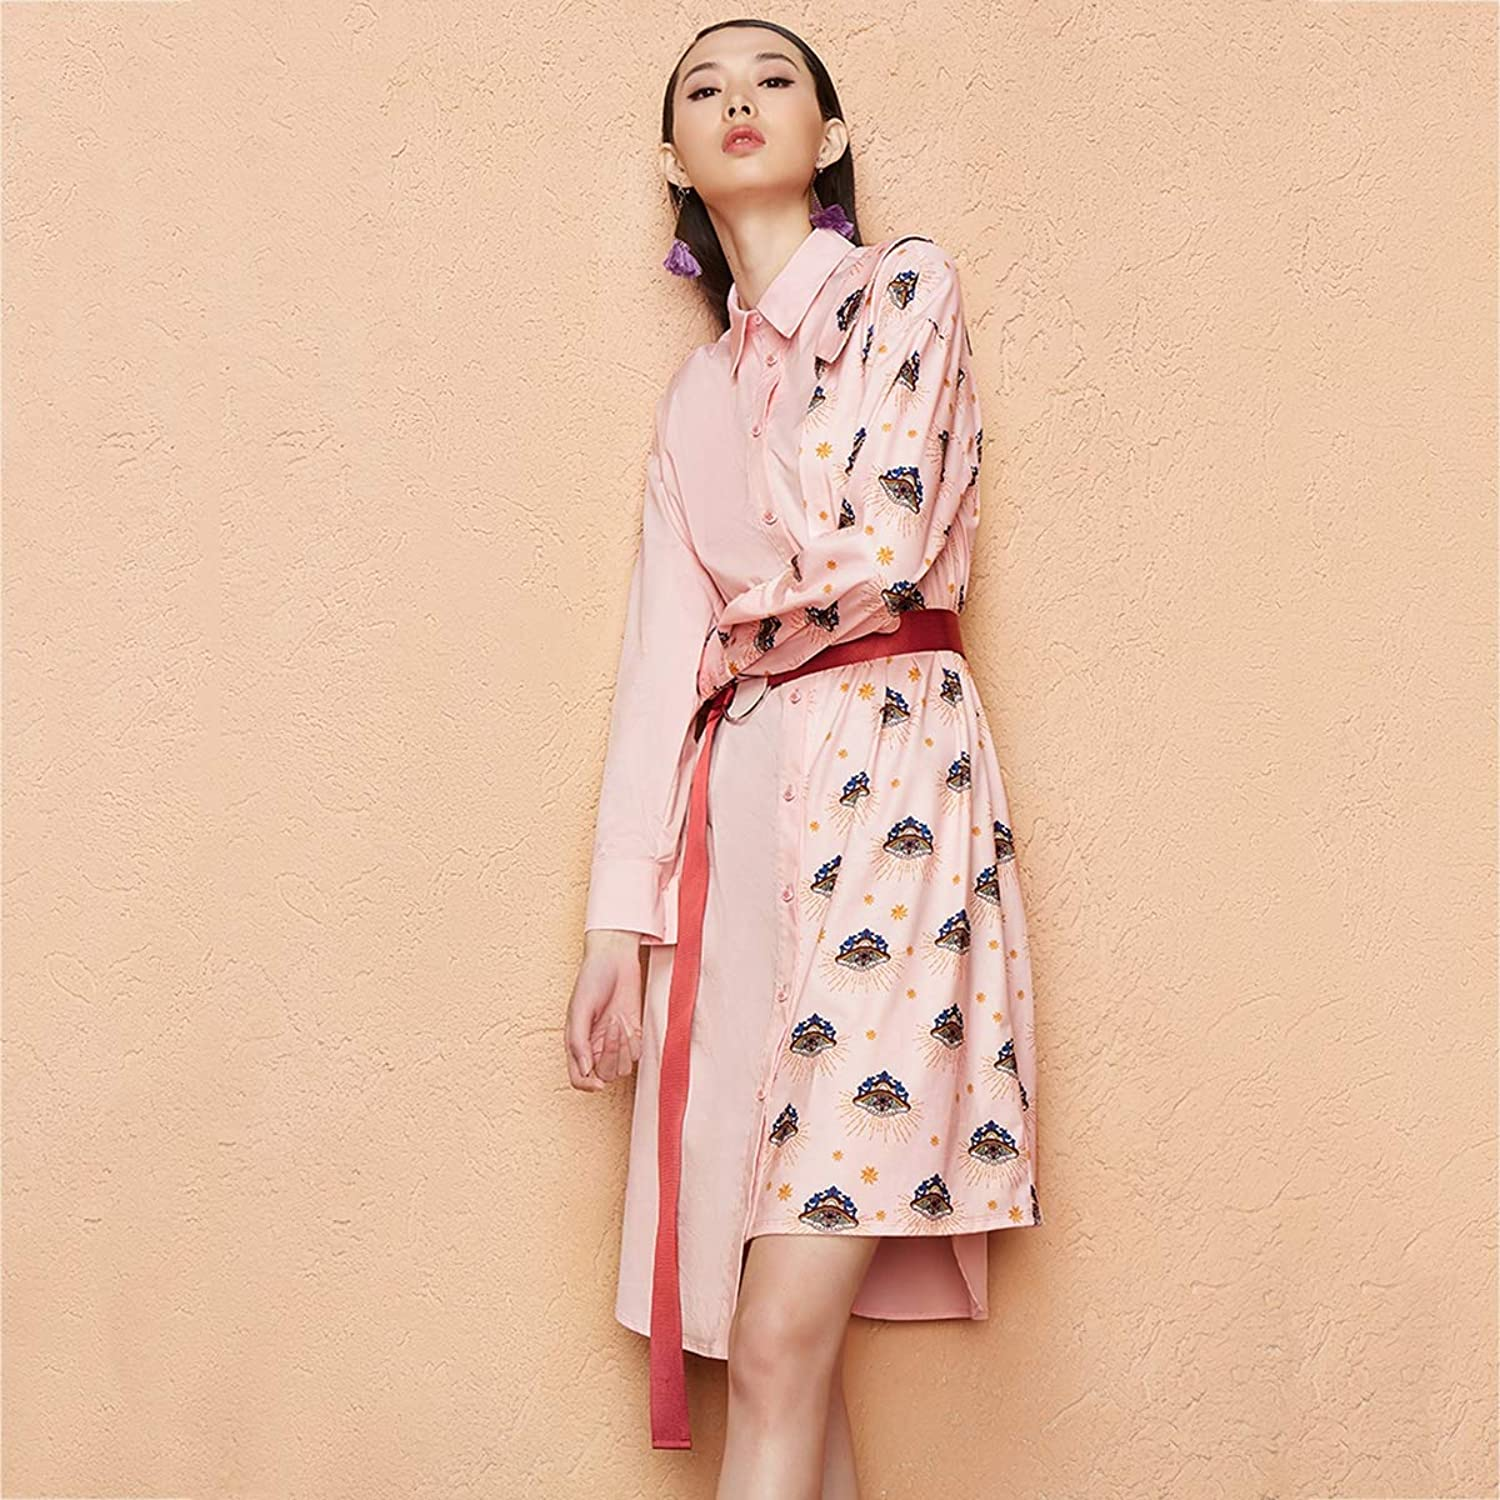 HECHEN Women's dresses, eyelids, prints, spring and autumn, two dresses, women, long and short fall clothes (no belt)